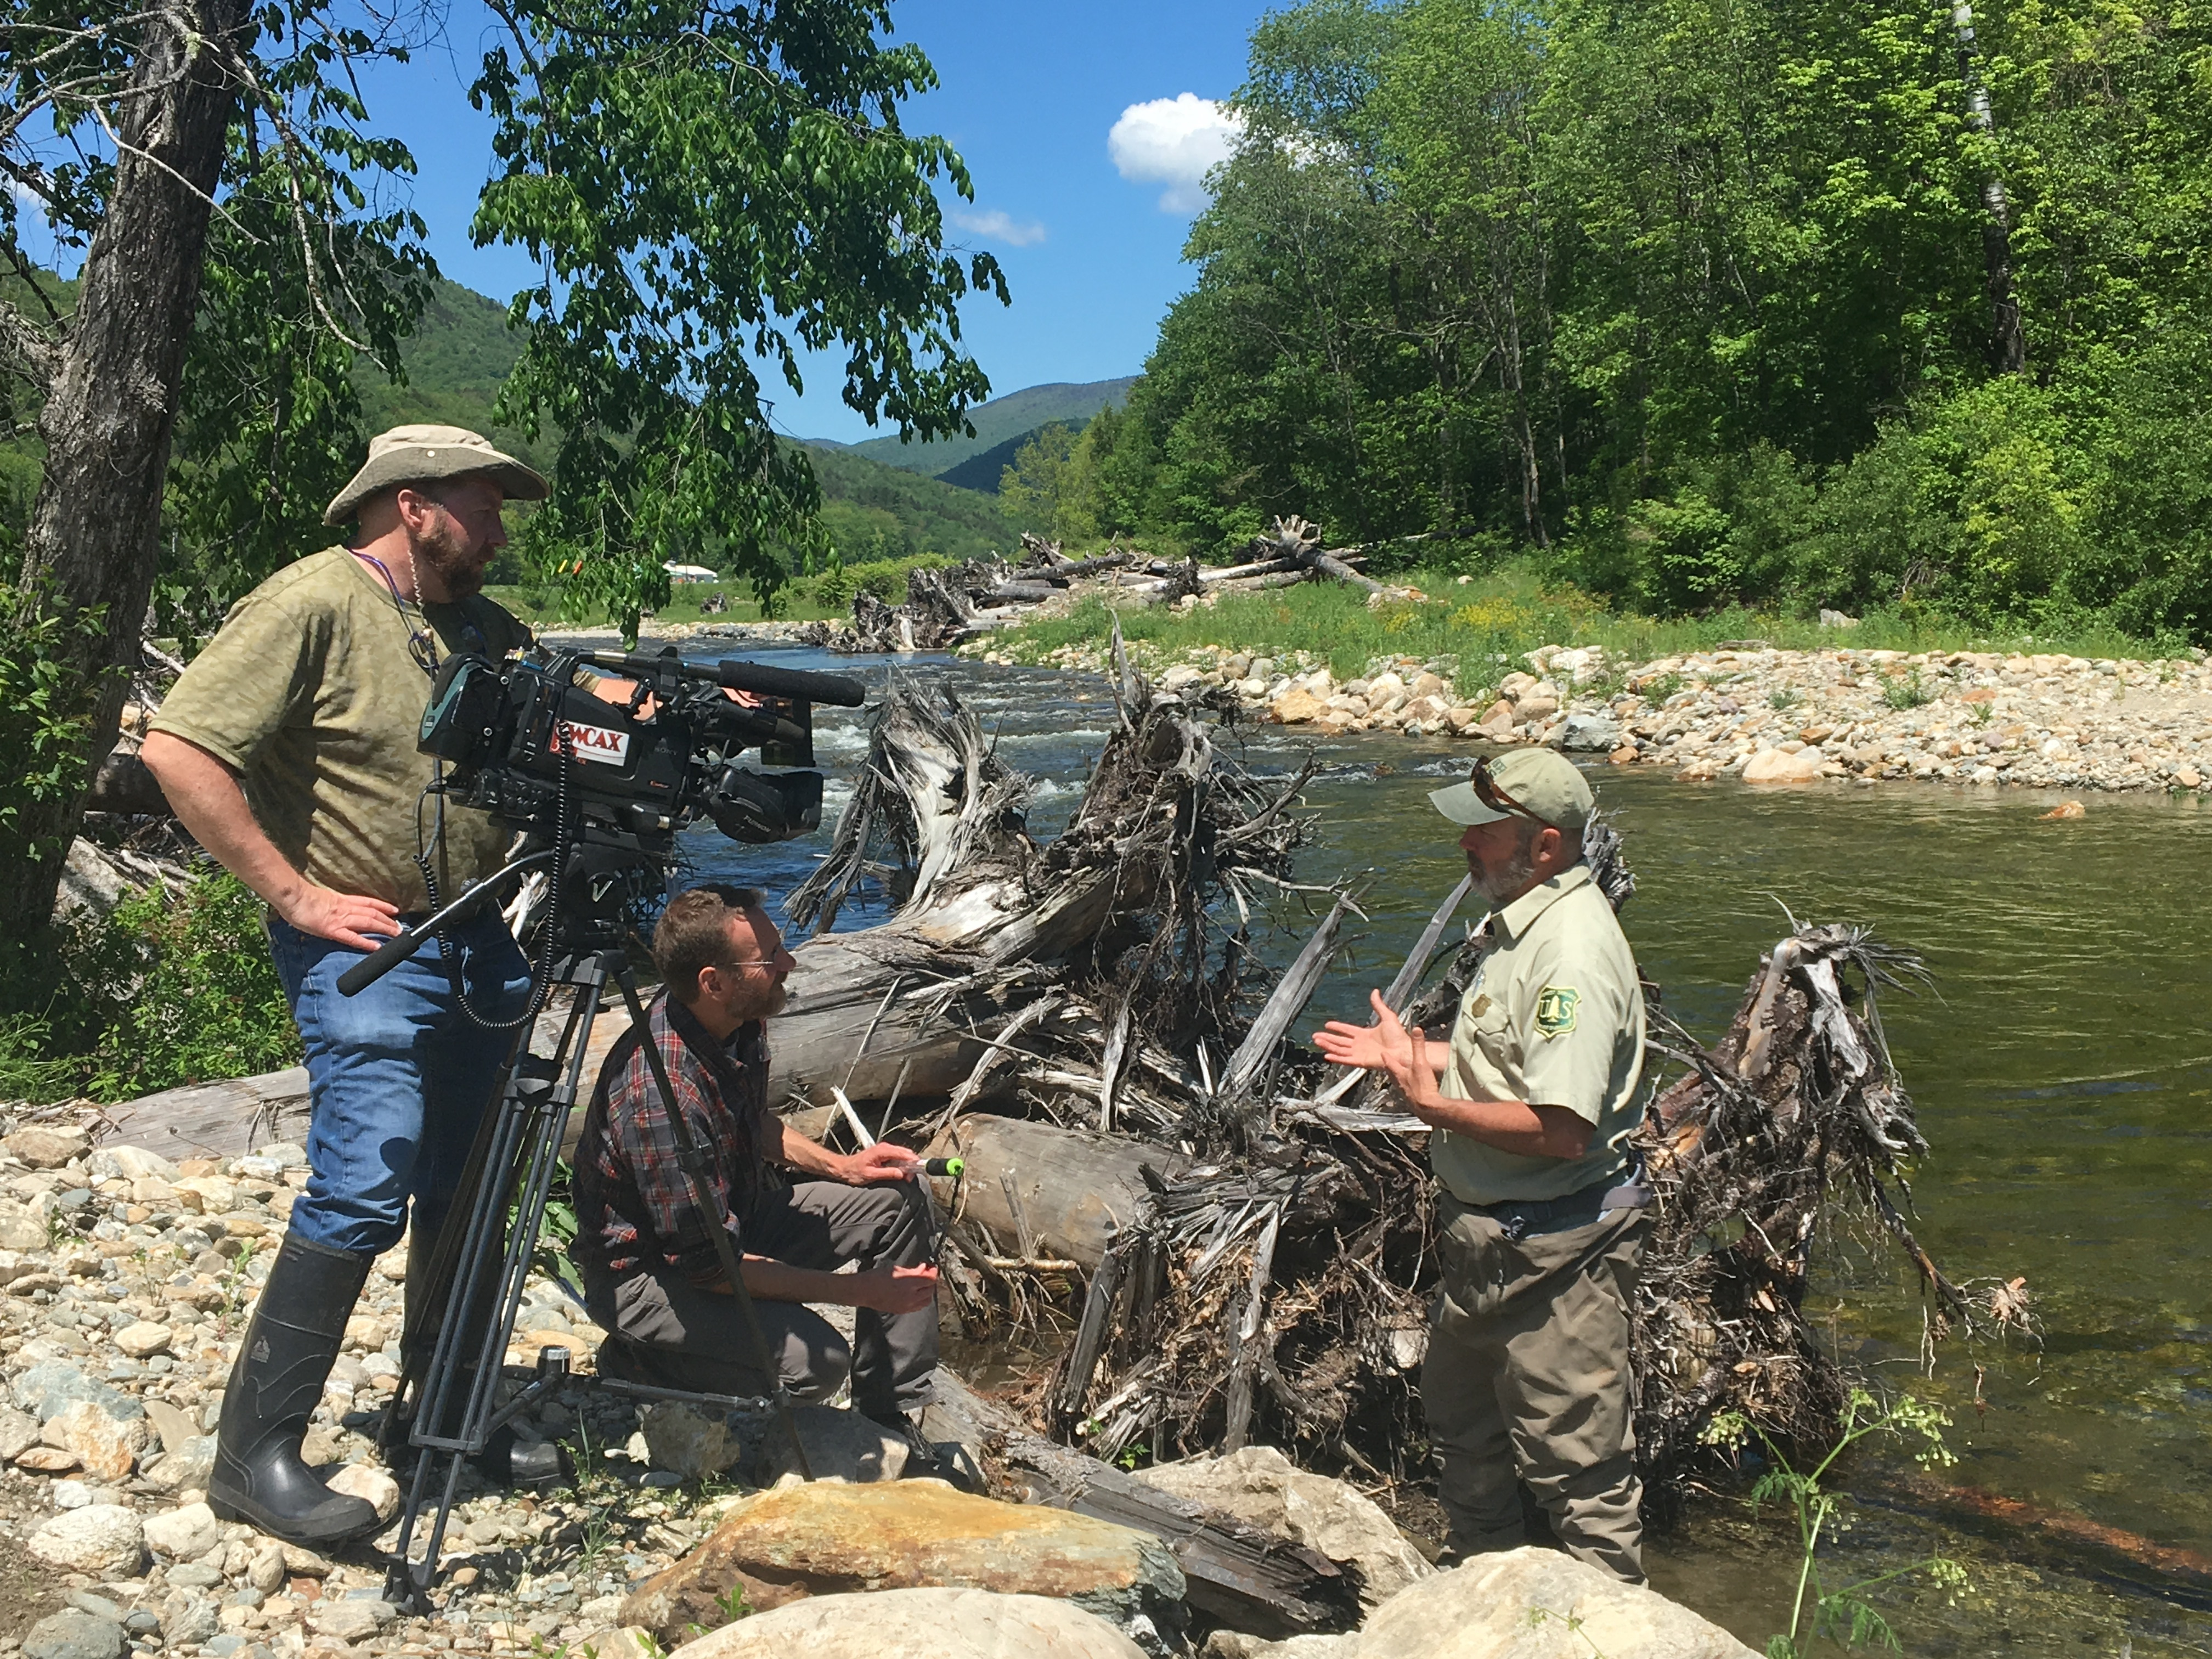 Dan McKinley discusses the Freshwater Snorkeling Program during an interview with WCAX in Vermont